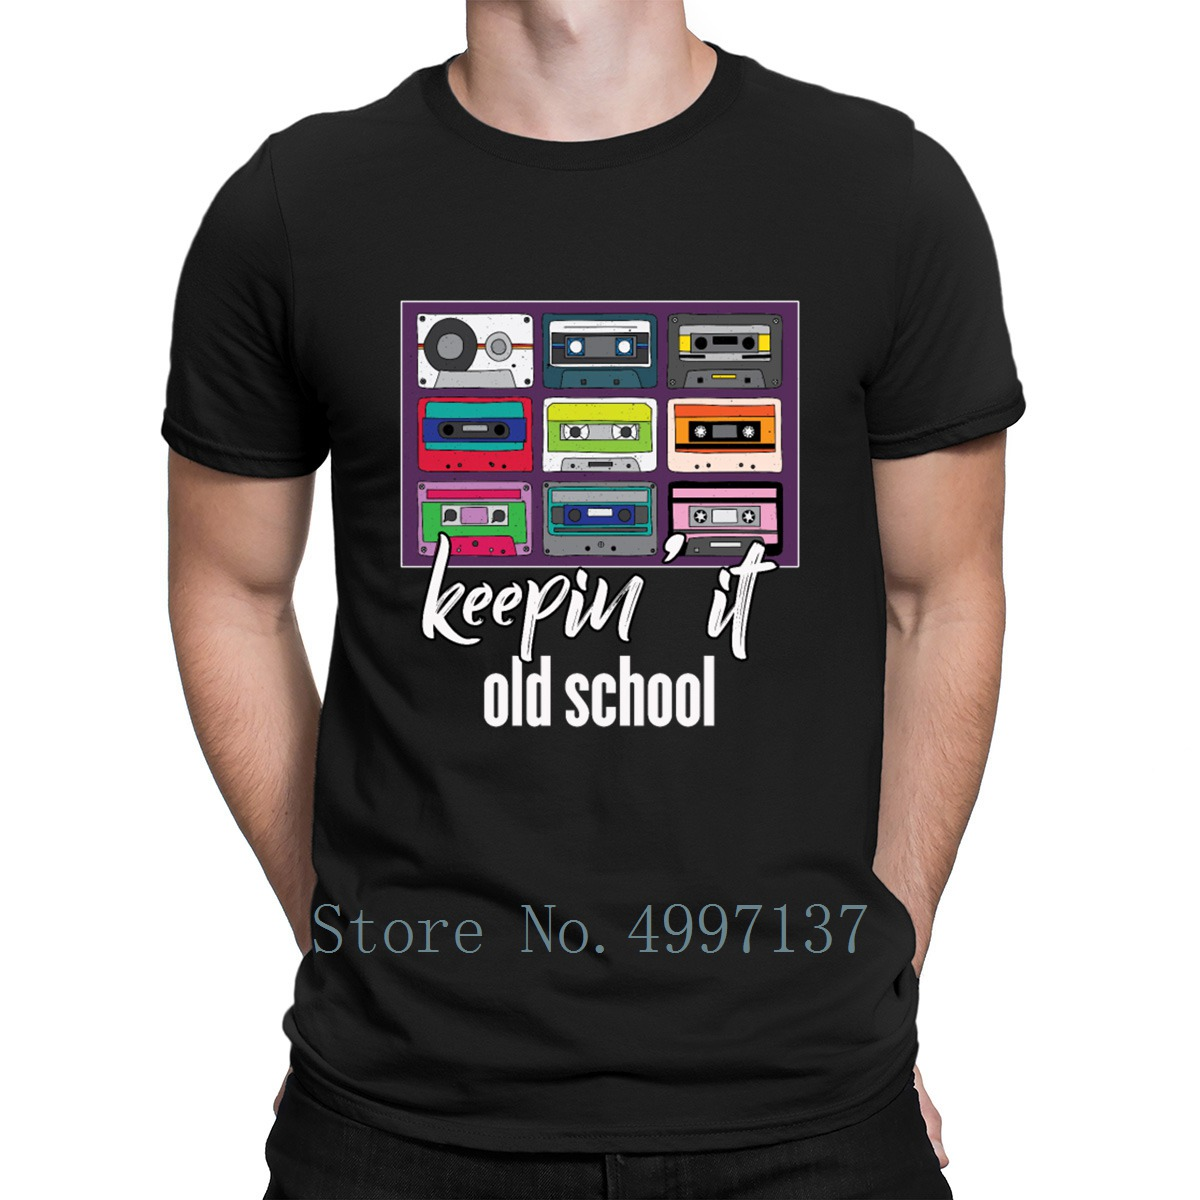 Cassette Tapes Mixtape Vintage 80s 90s Retro Music T Shirt Breathable Character Euro Size S-3xl Summer 100% Cotton Shirt image